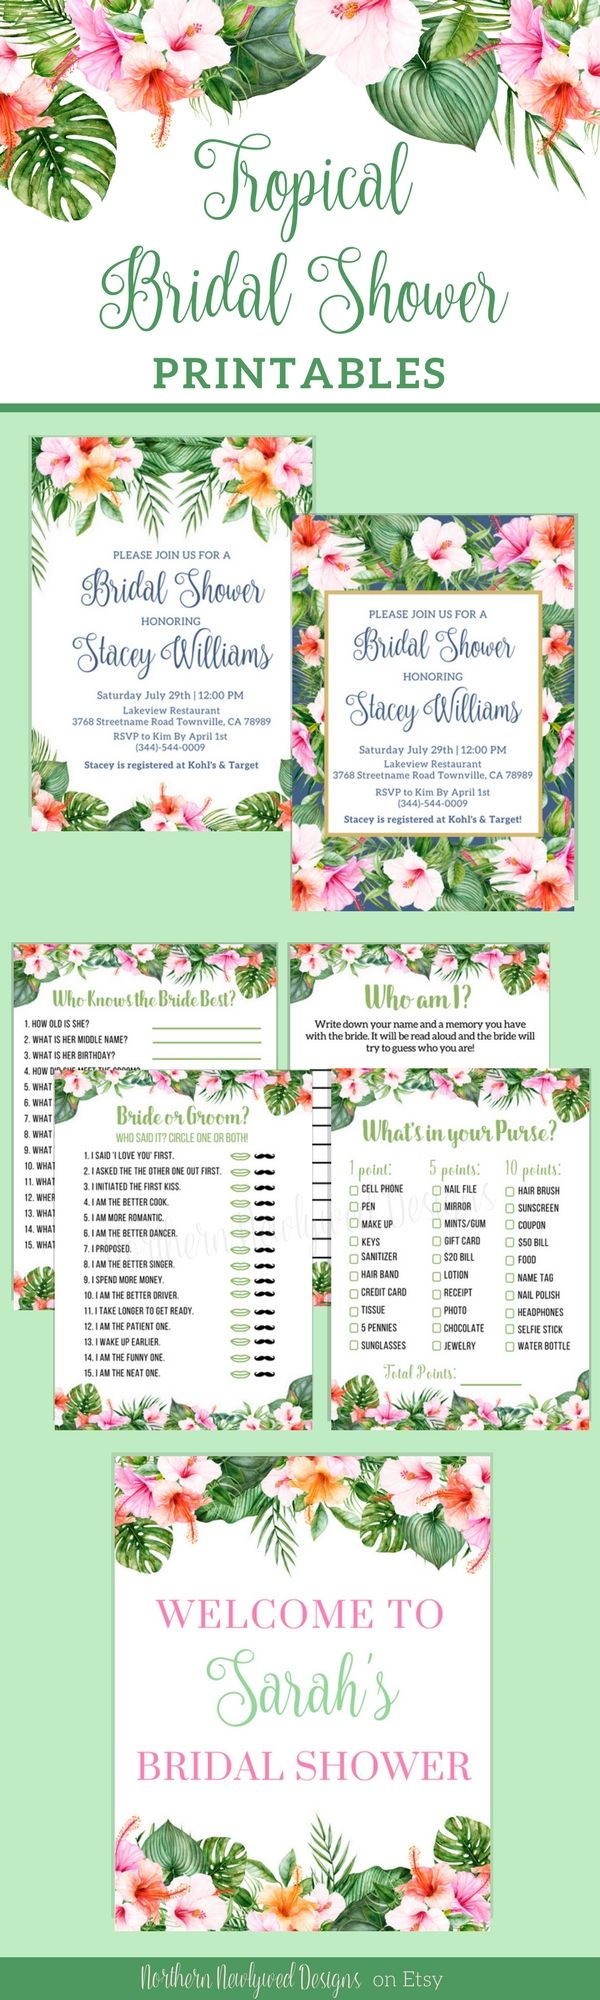 Tropical Bridal Shower Printables! Tropical Bridal Shower Games / Tropical Bridal Shower Invitations / Tropical Bridal Shower Decor. NorthernNewlywed on Etsy!